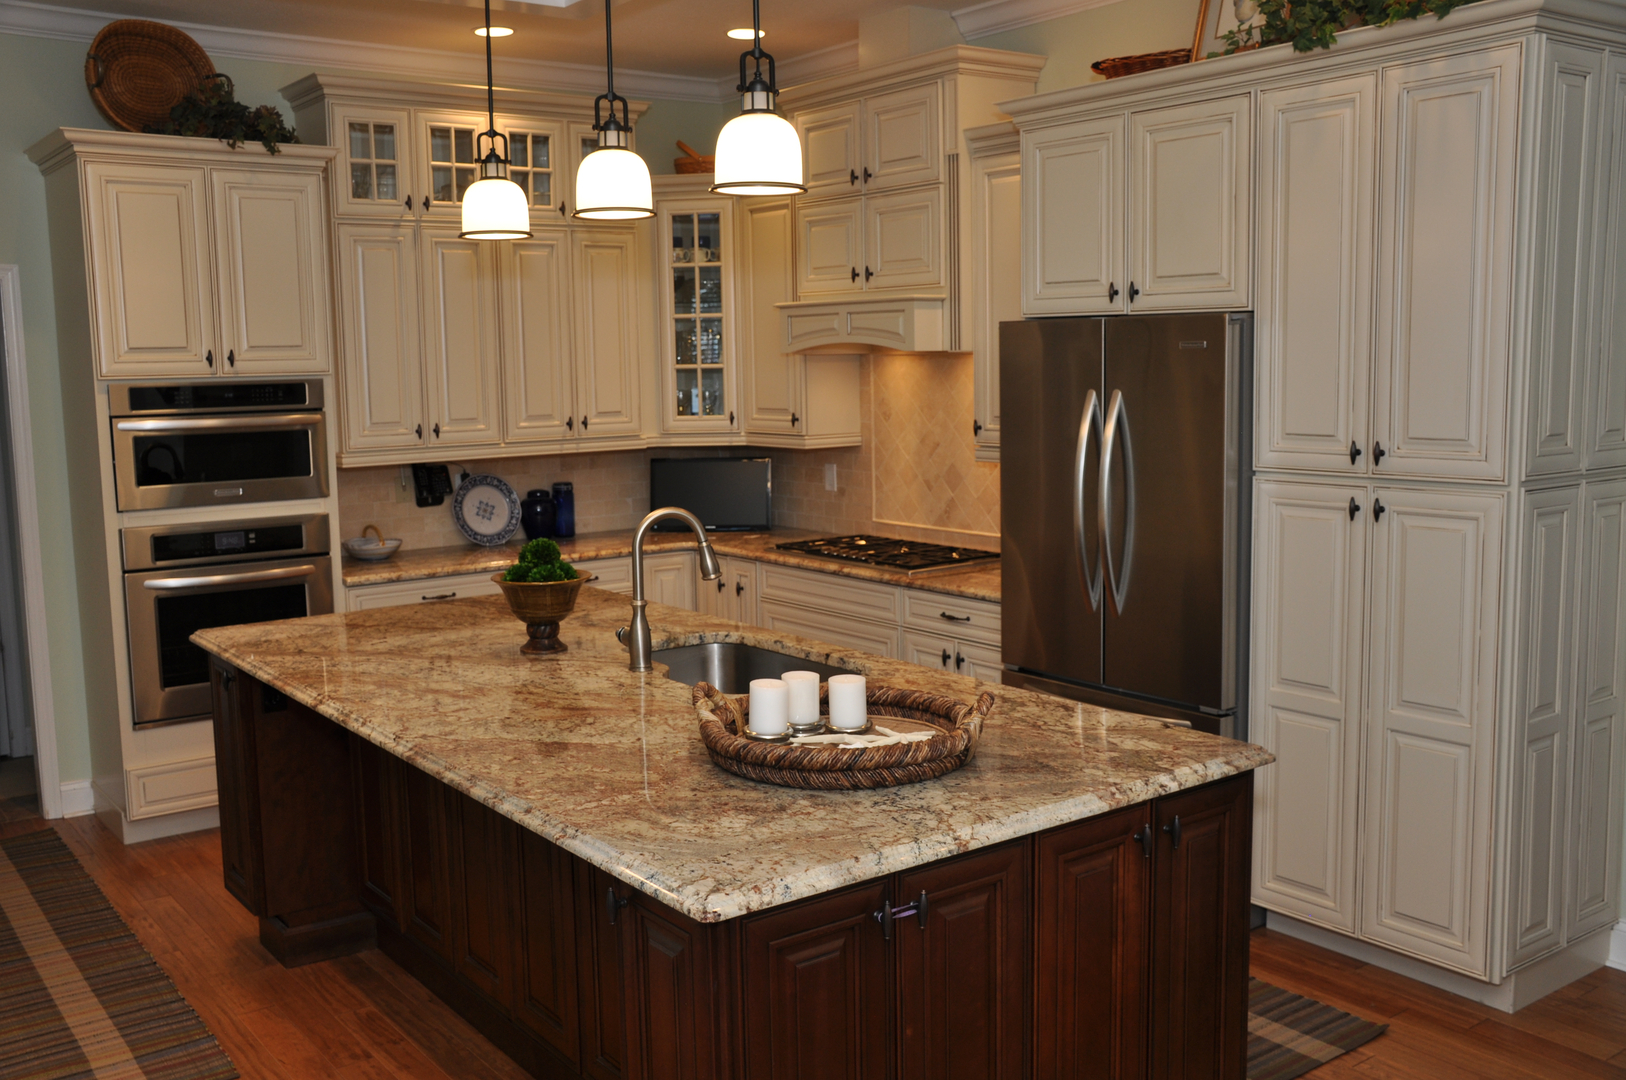 Csd Kitchen And Bath Llc Kitchen Cabinet New Jersey Kitchen Design Kitchen Ideas Kitchen Remodeling Kitchen Remodel Brick Toms River Lakewood Howell Freehold Granite Counter Tops Quartz Countertops Tiles Wholesale Kitchen Bathroom